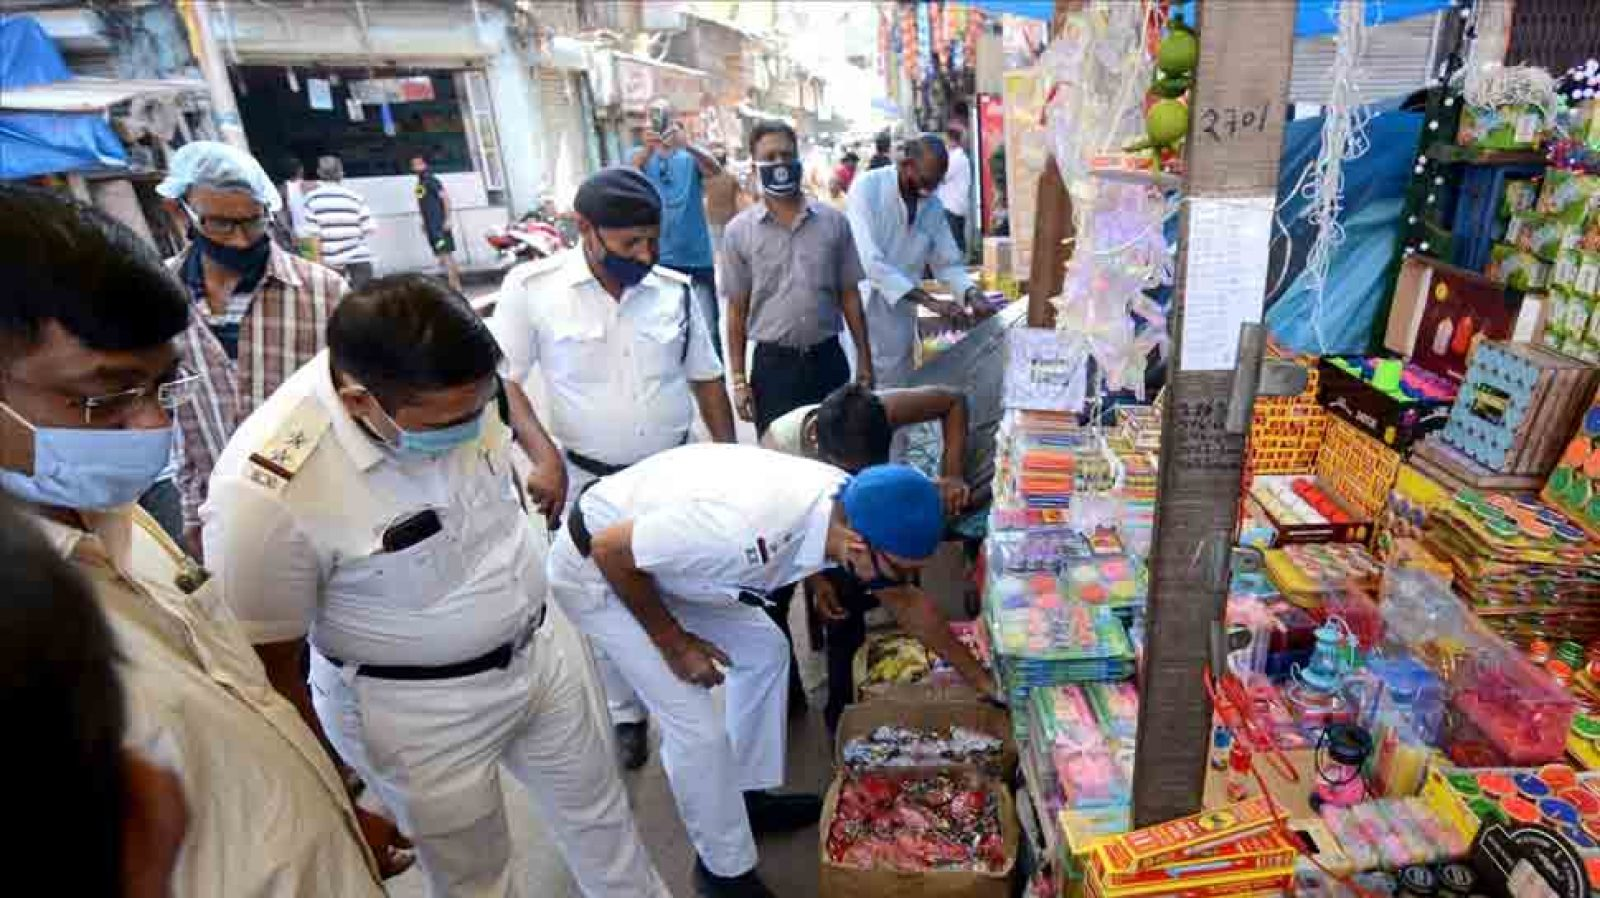 Traders record 72,000 crore sales on Diwali amid boycott of Chinese products: CAIT